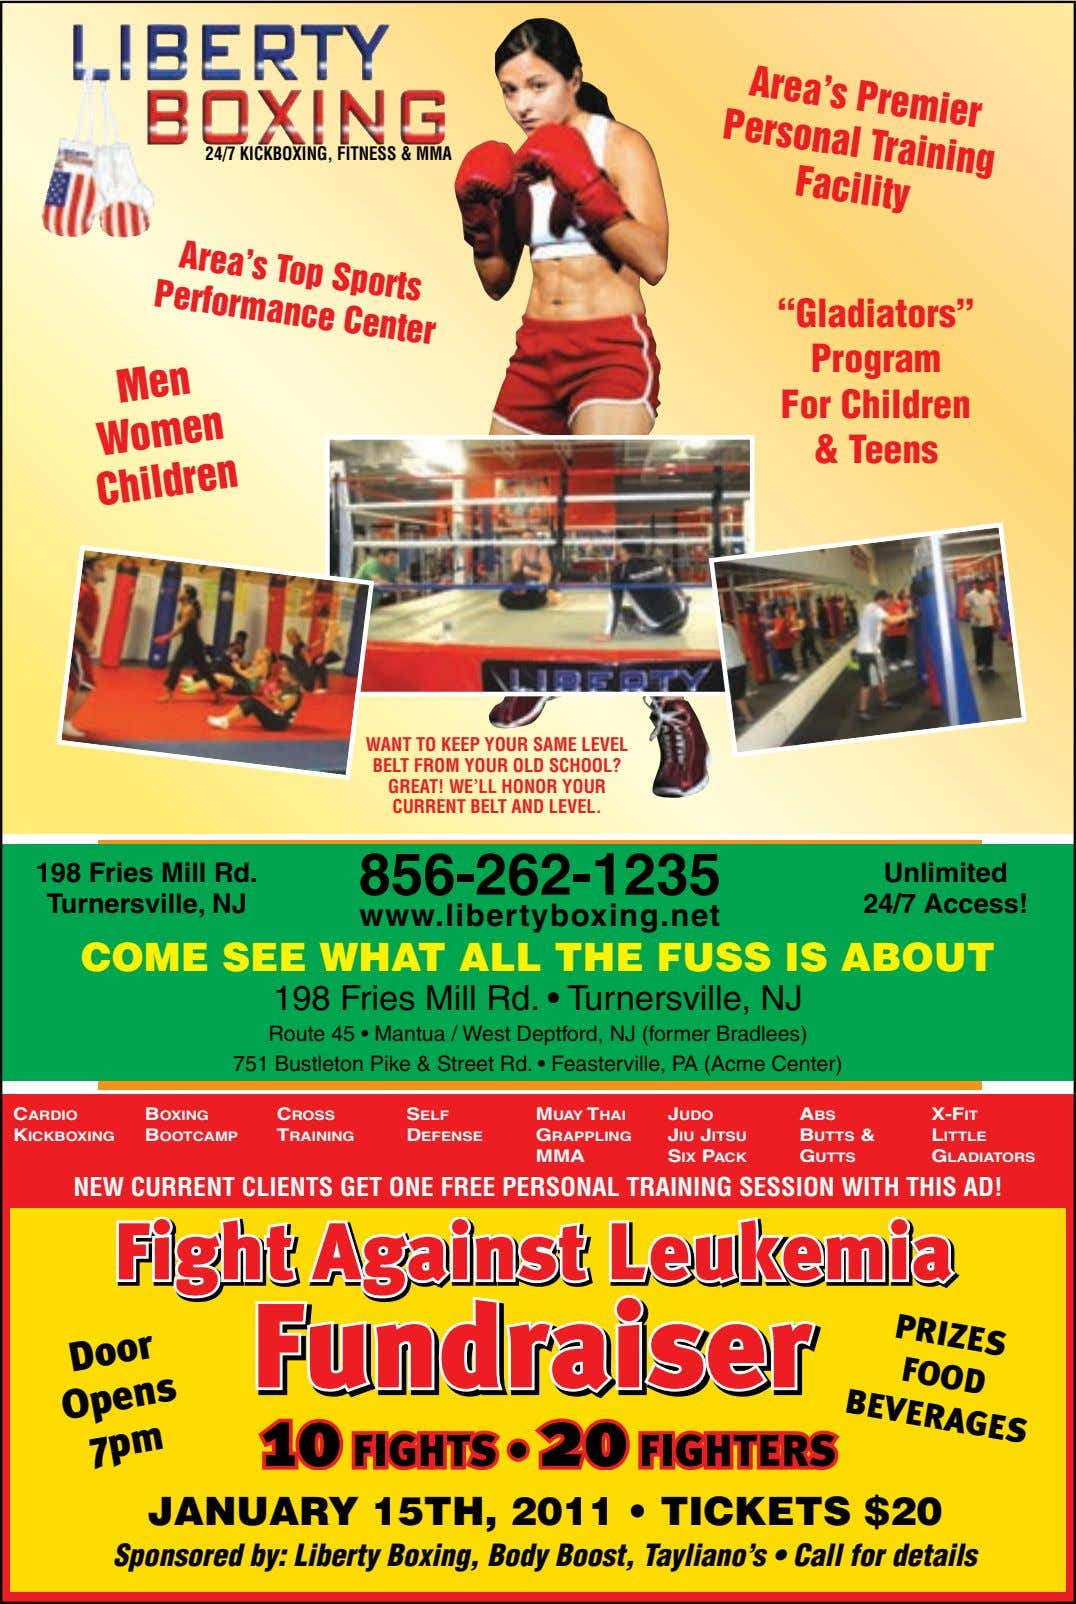 Area's Premier Personal Training Facility 24/7 KICKBOXING, FITNESS & MMA Area's Top Sports Performance Center Men